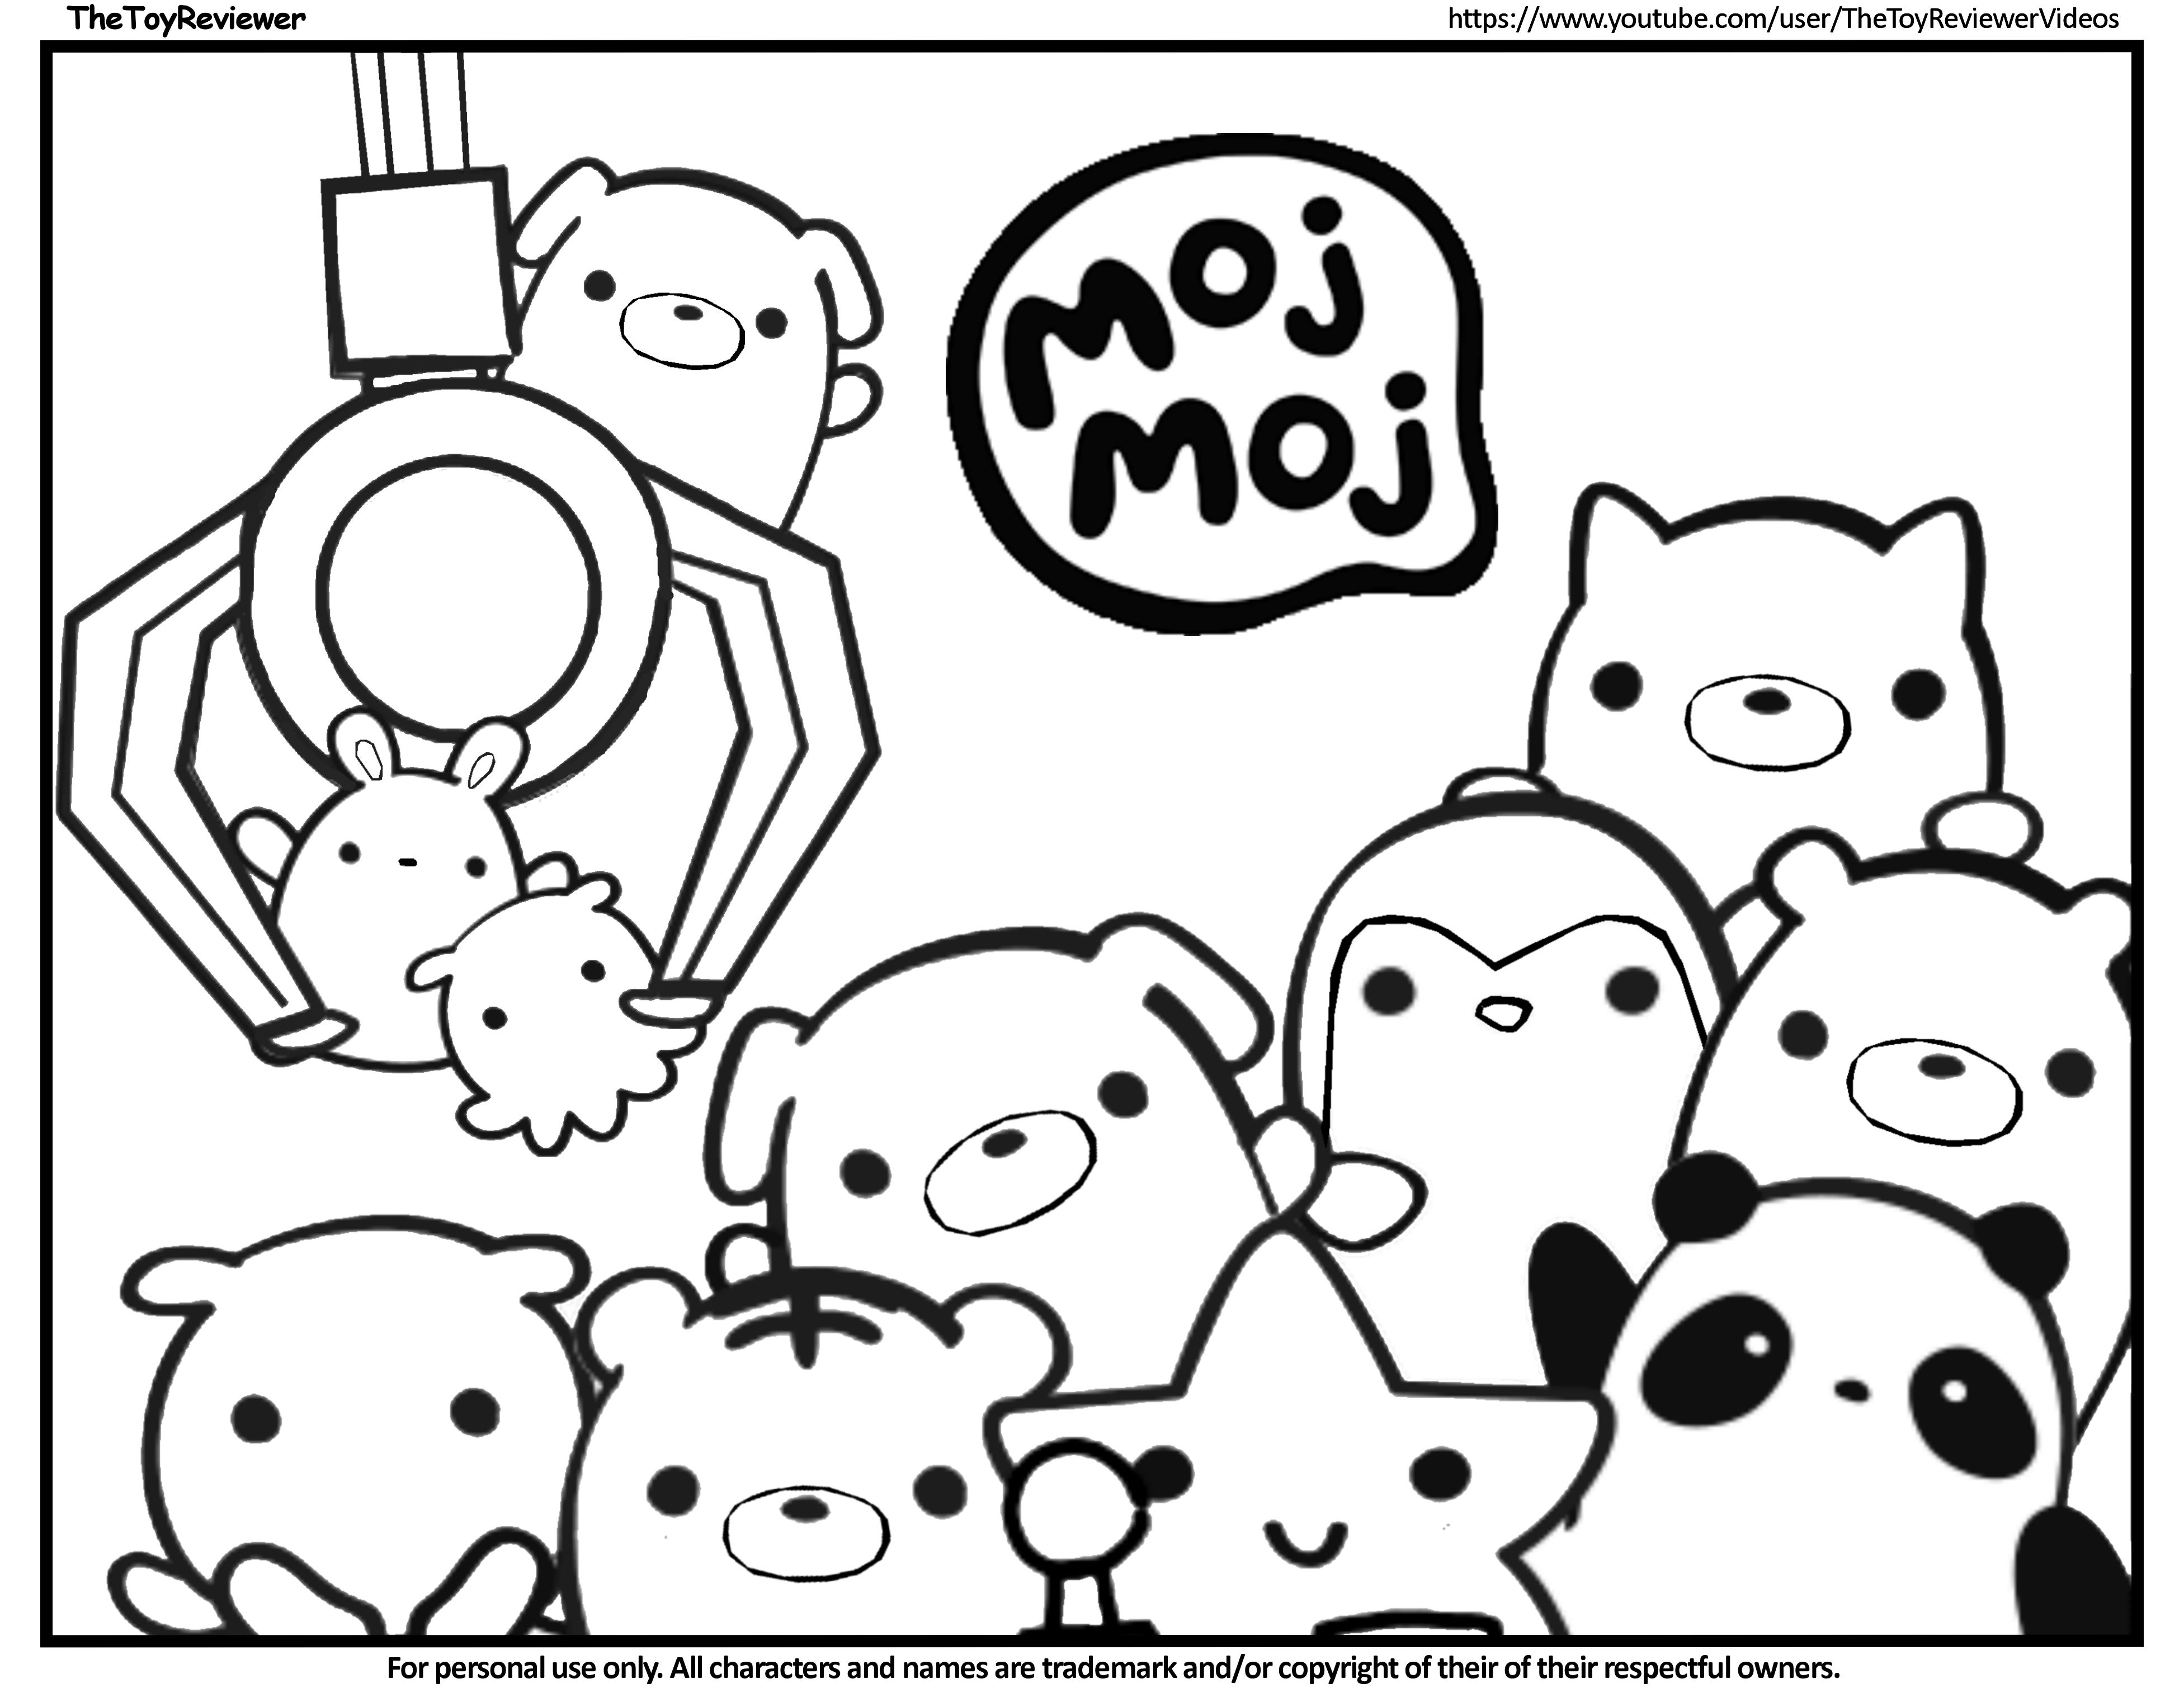 Here is the Moj Moj Coloring Page! Click the picture to